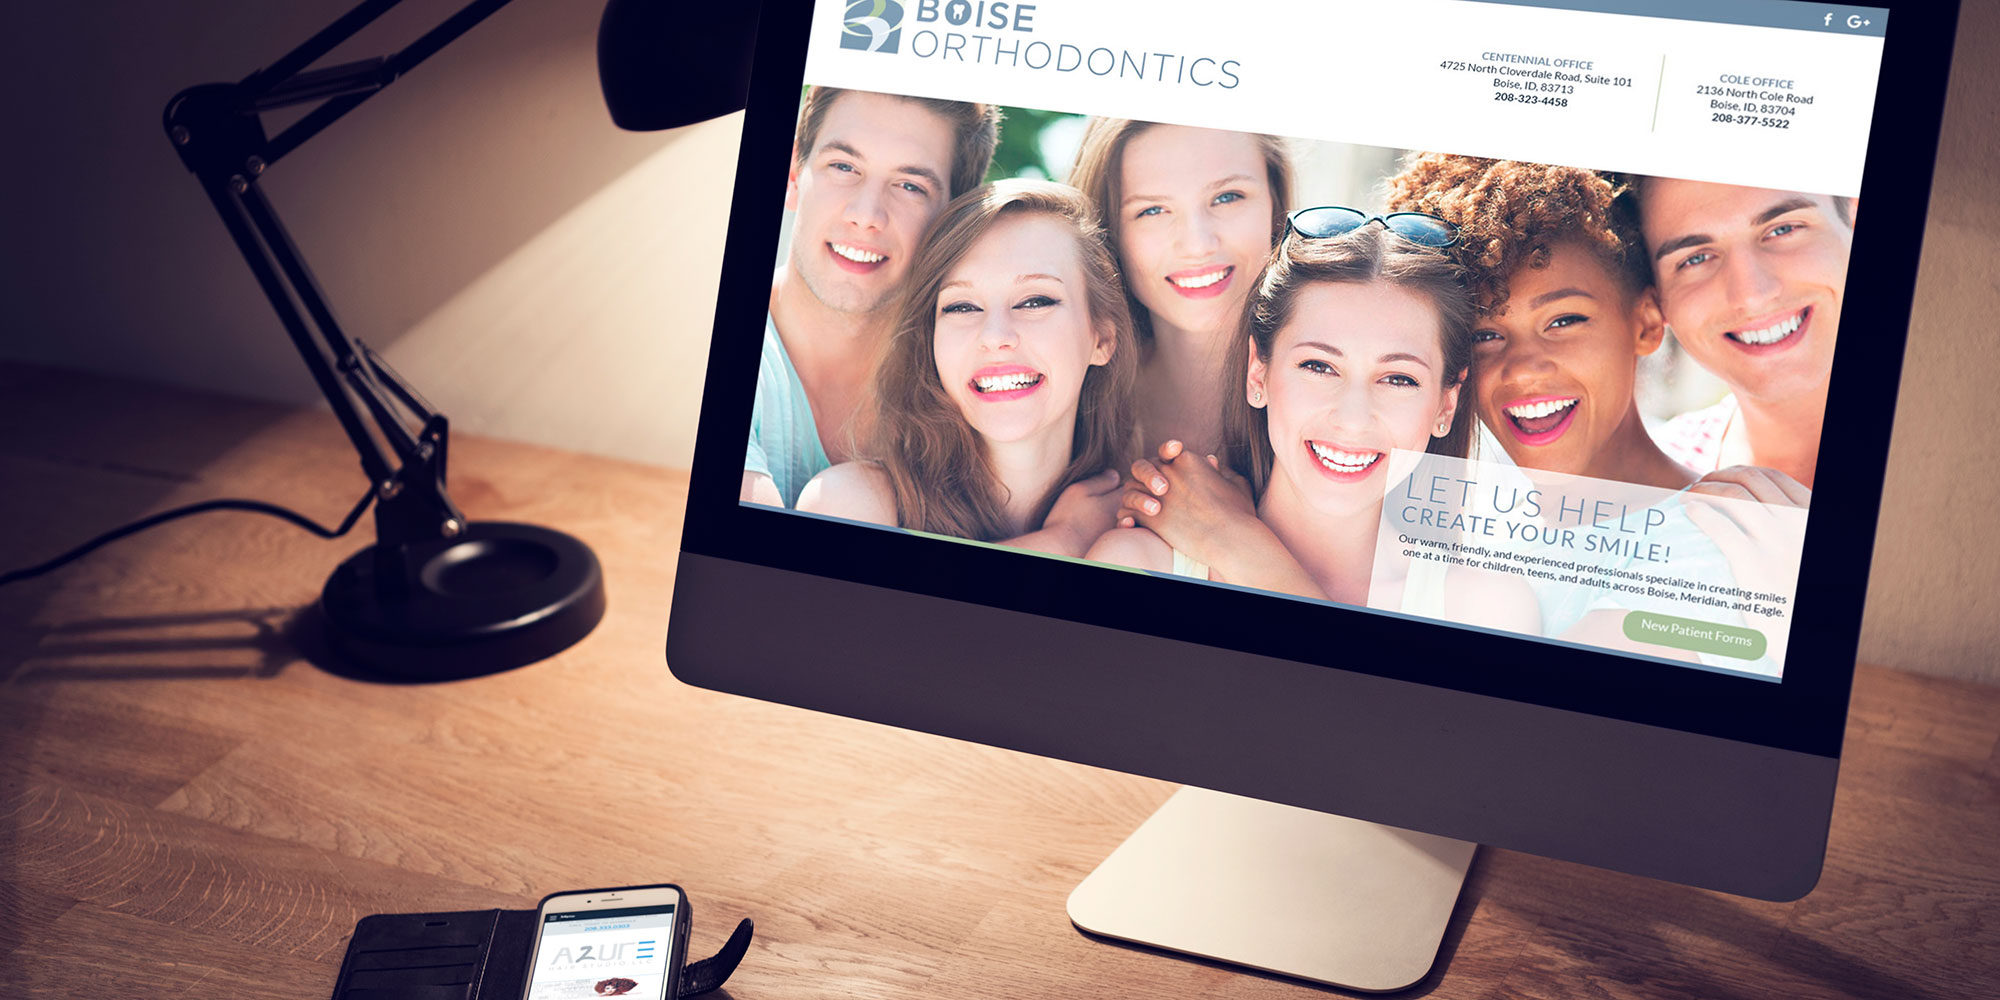 Boise Idaho Custom Website Design for a Orthodontics Company